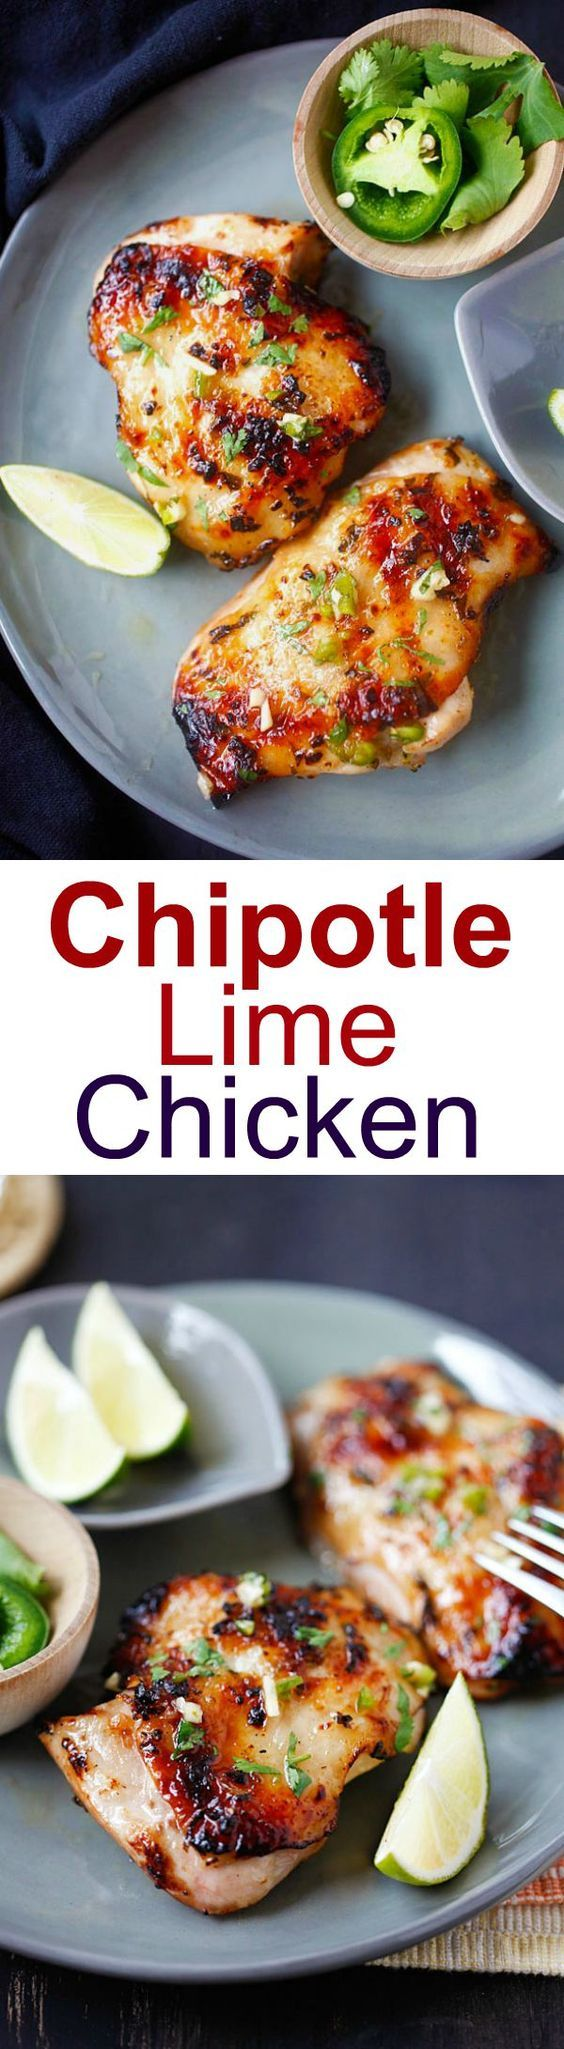 Chipotle Lime Chicken - ridiculously delicious and juicy grilled chicken recipe with chipotle chili, lime juice, garlic and cilantro! | rasamalaysia.com